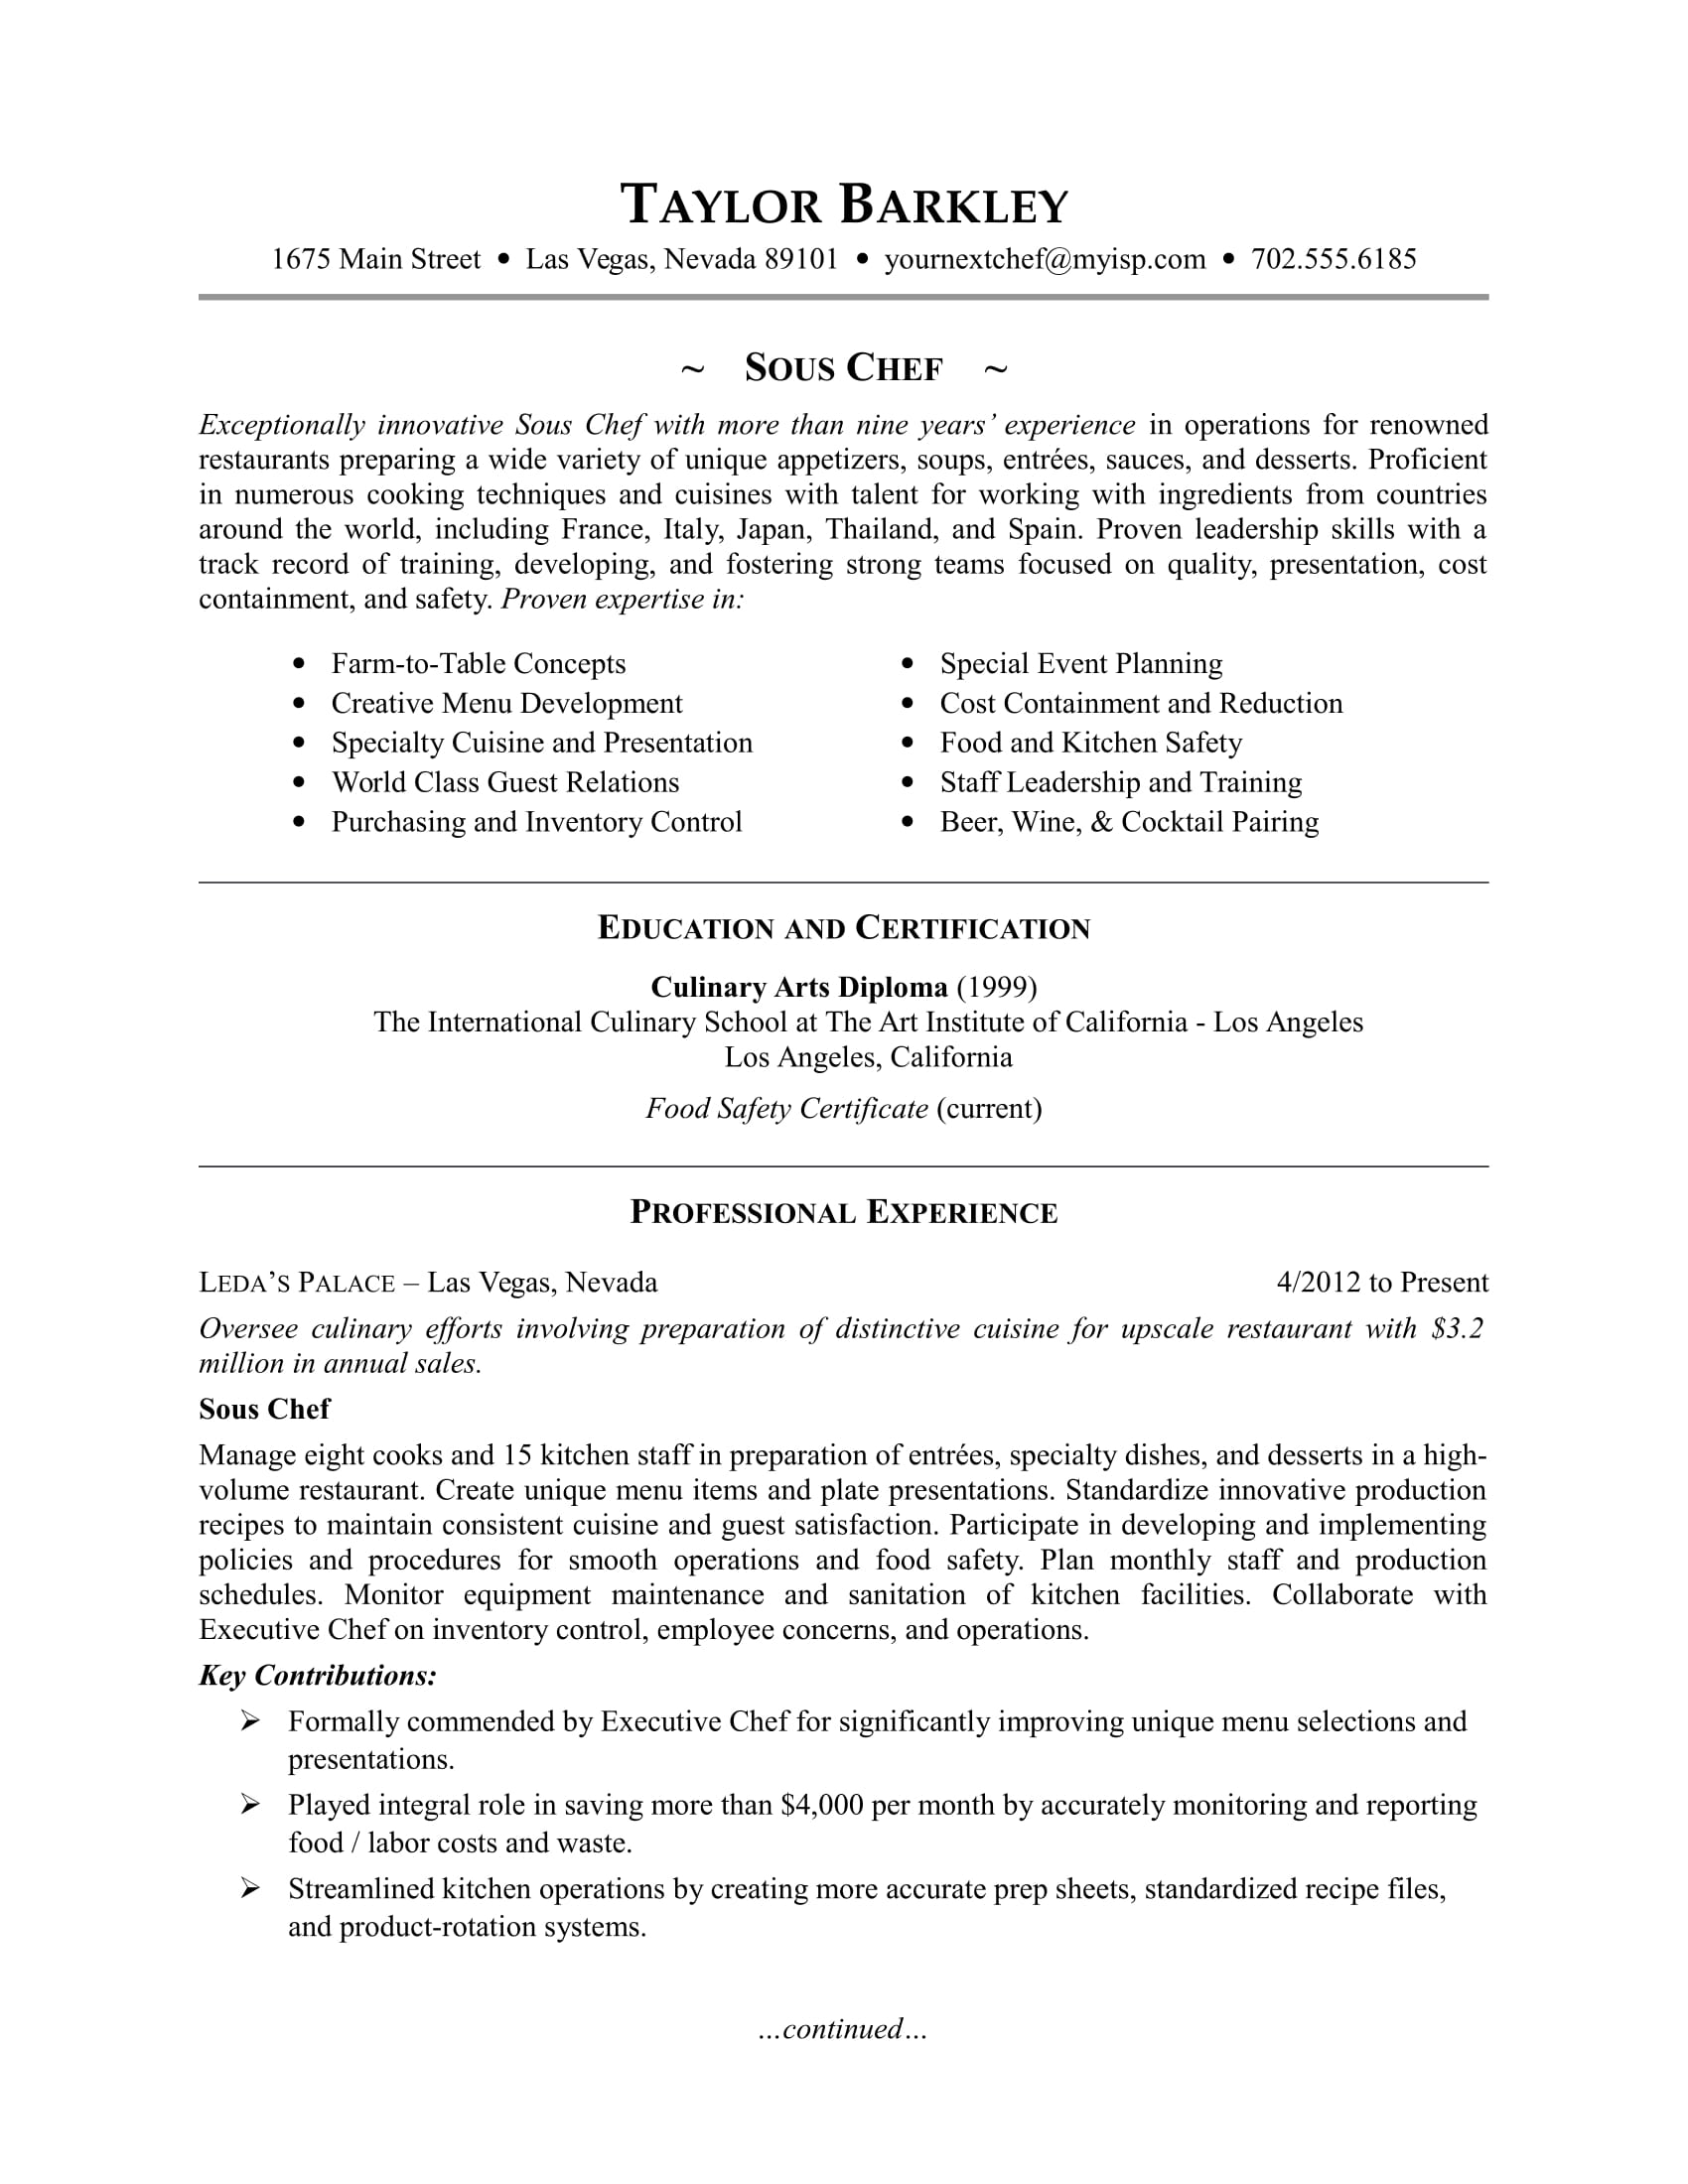 Beautiful Sample Resume For A Sous Chef To Sample Chef Resume